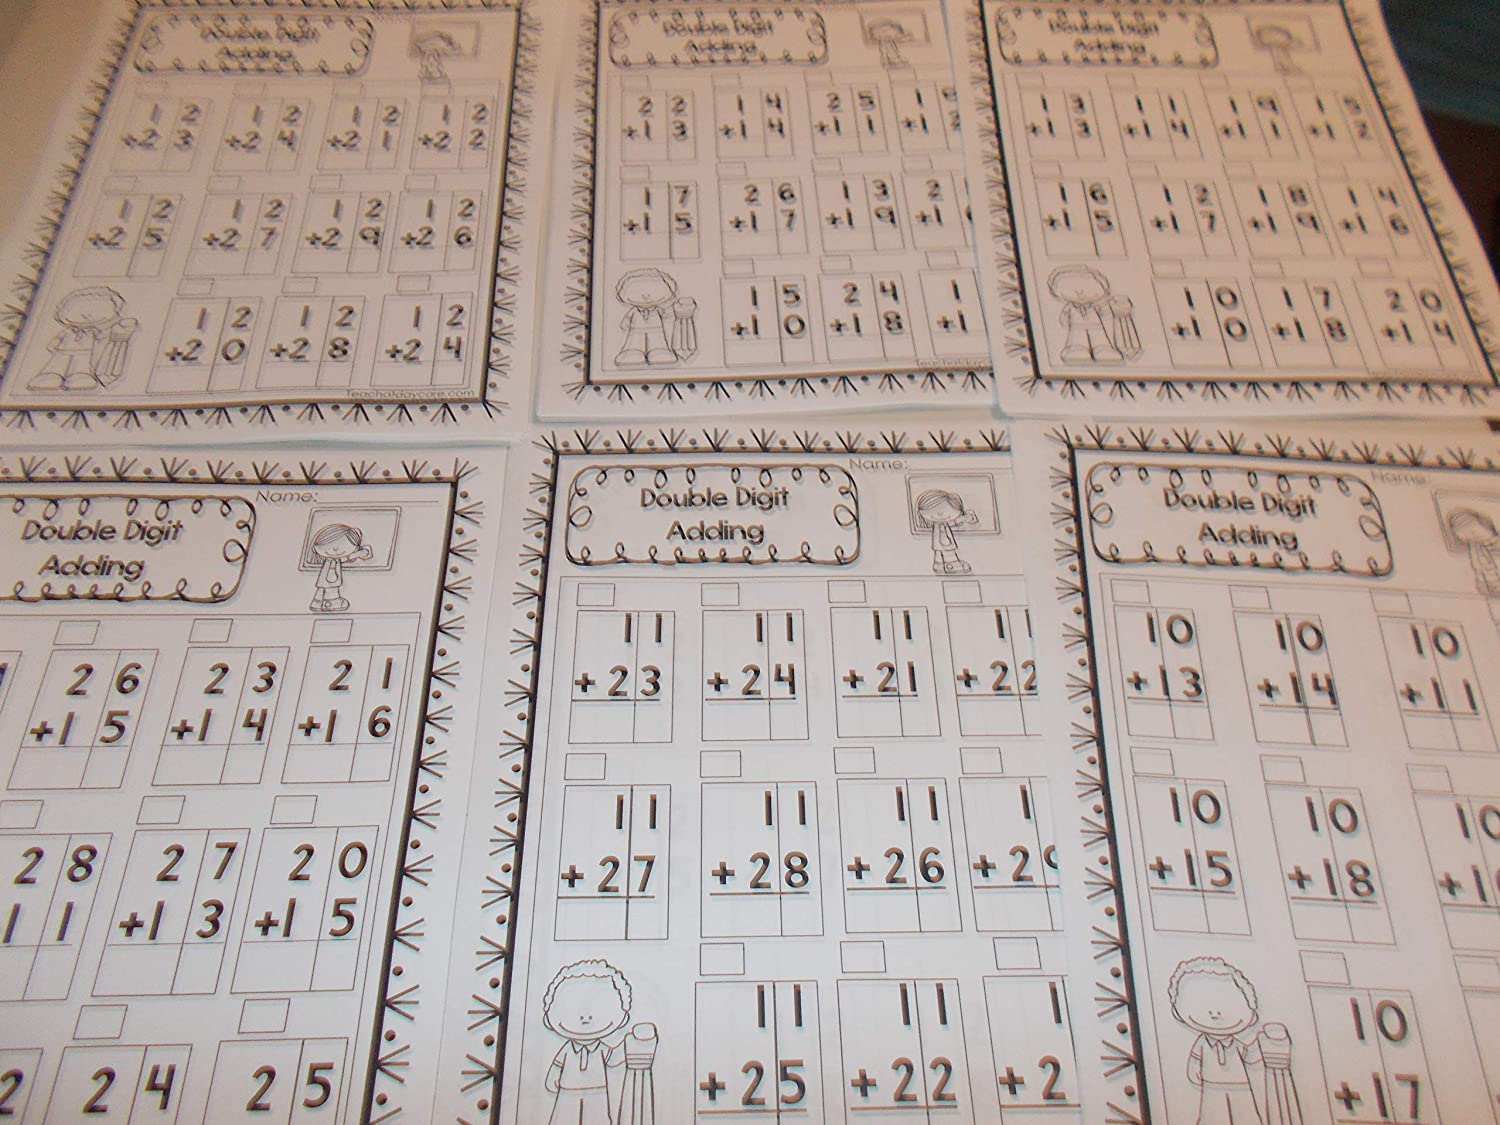 300 Printed Double Digit Add Subtract Worksheets.